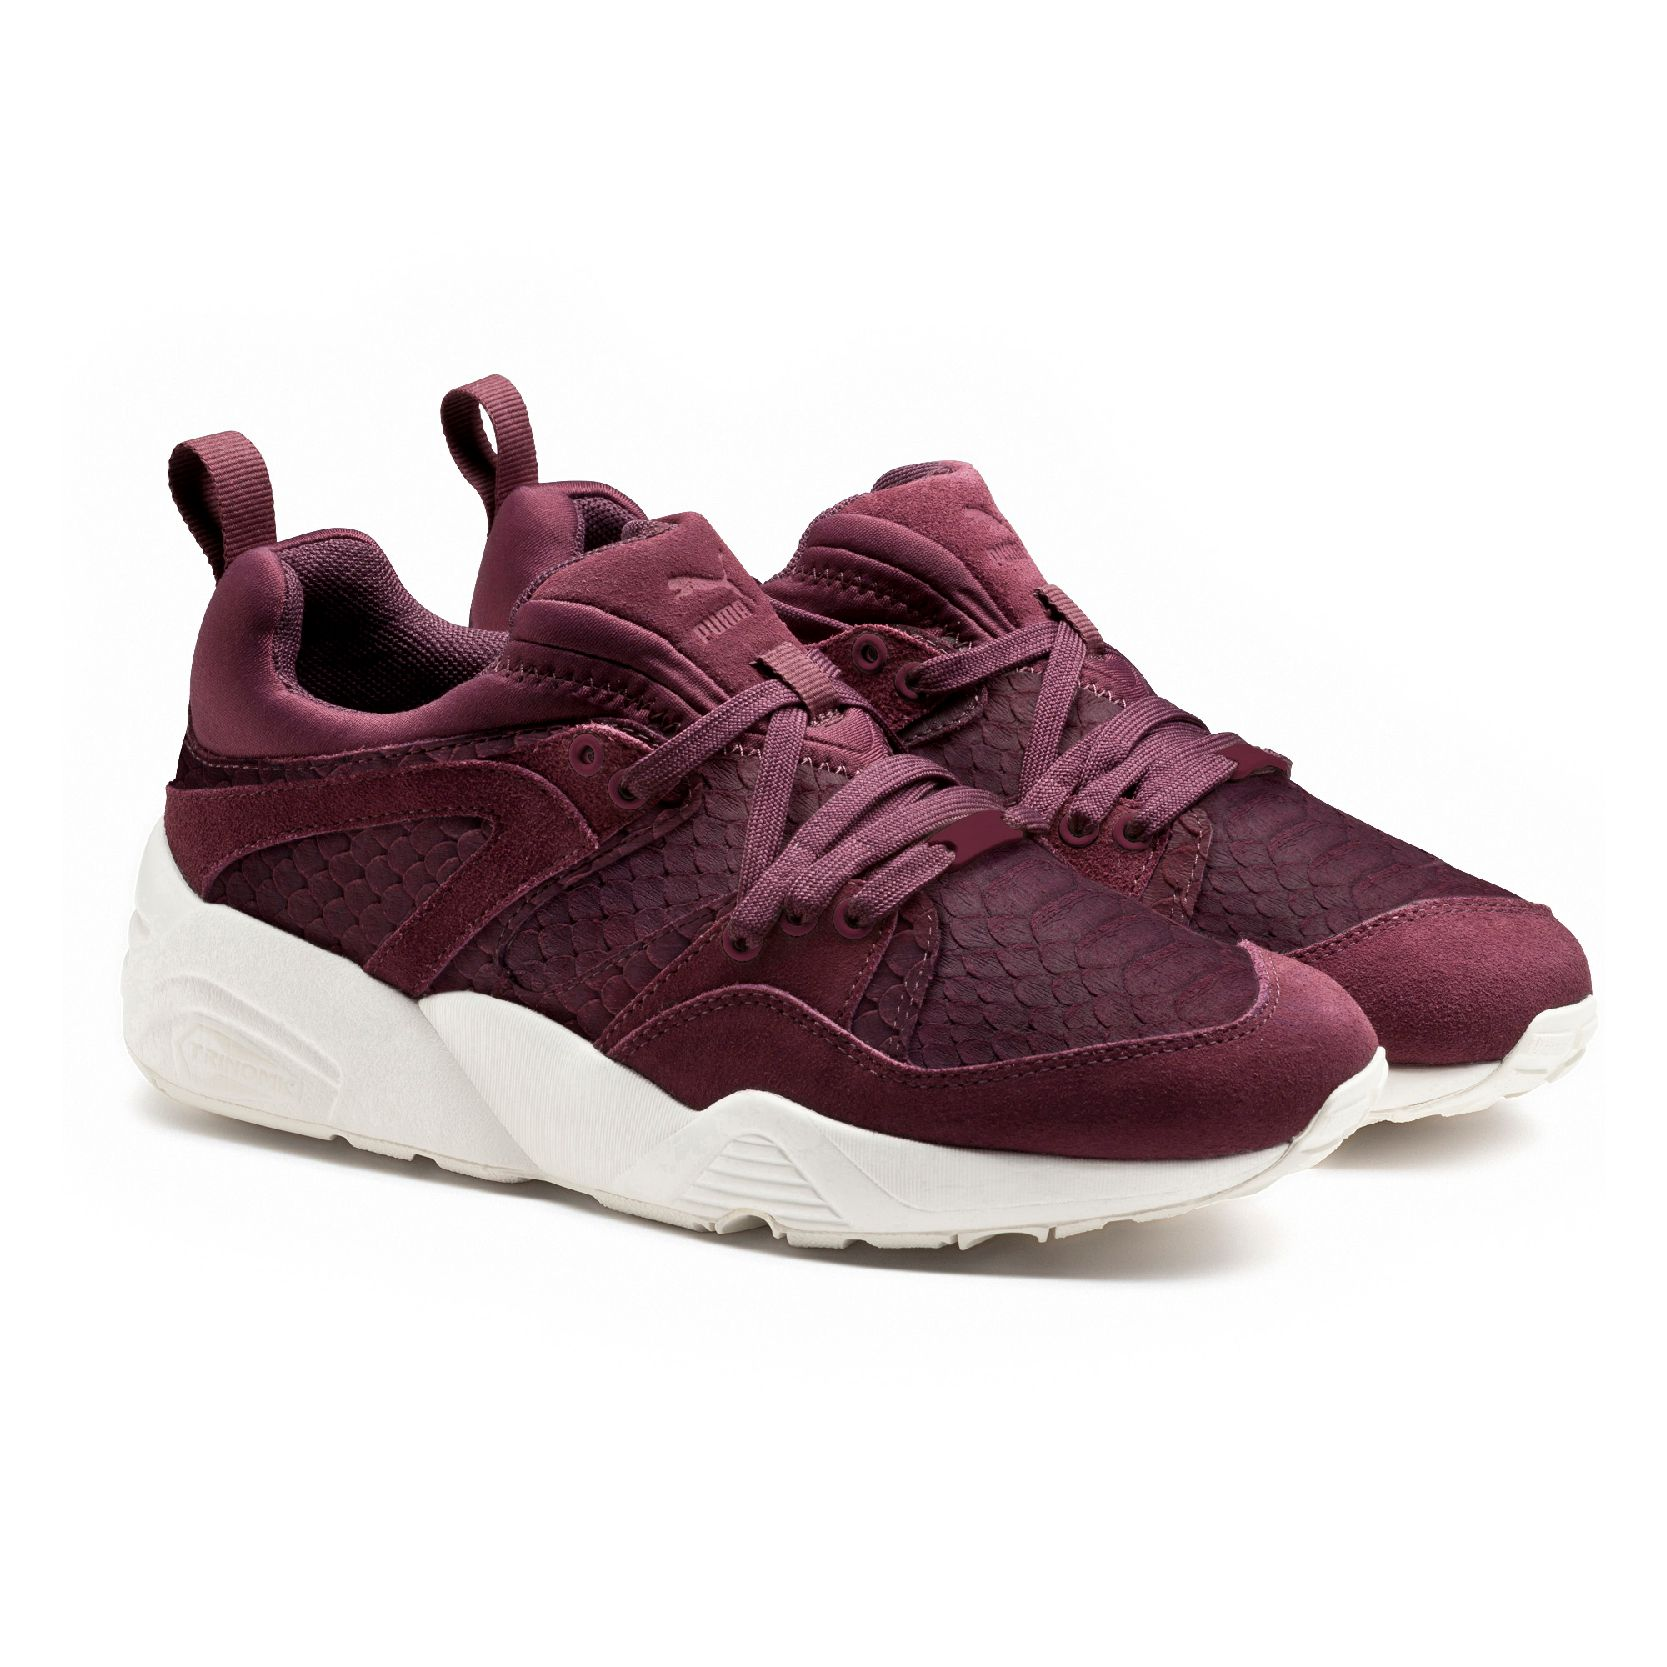 Puma Rouge Bordeaux